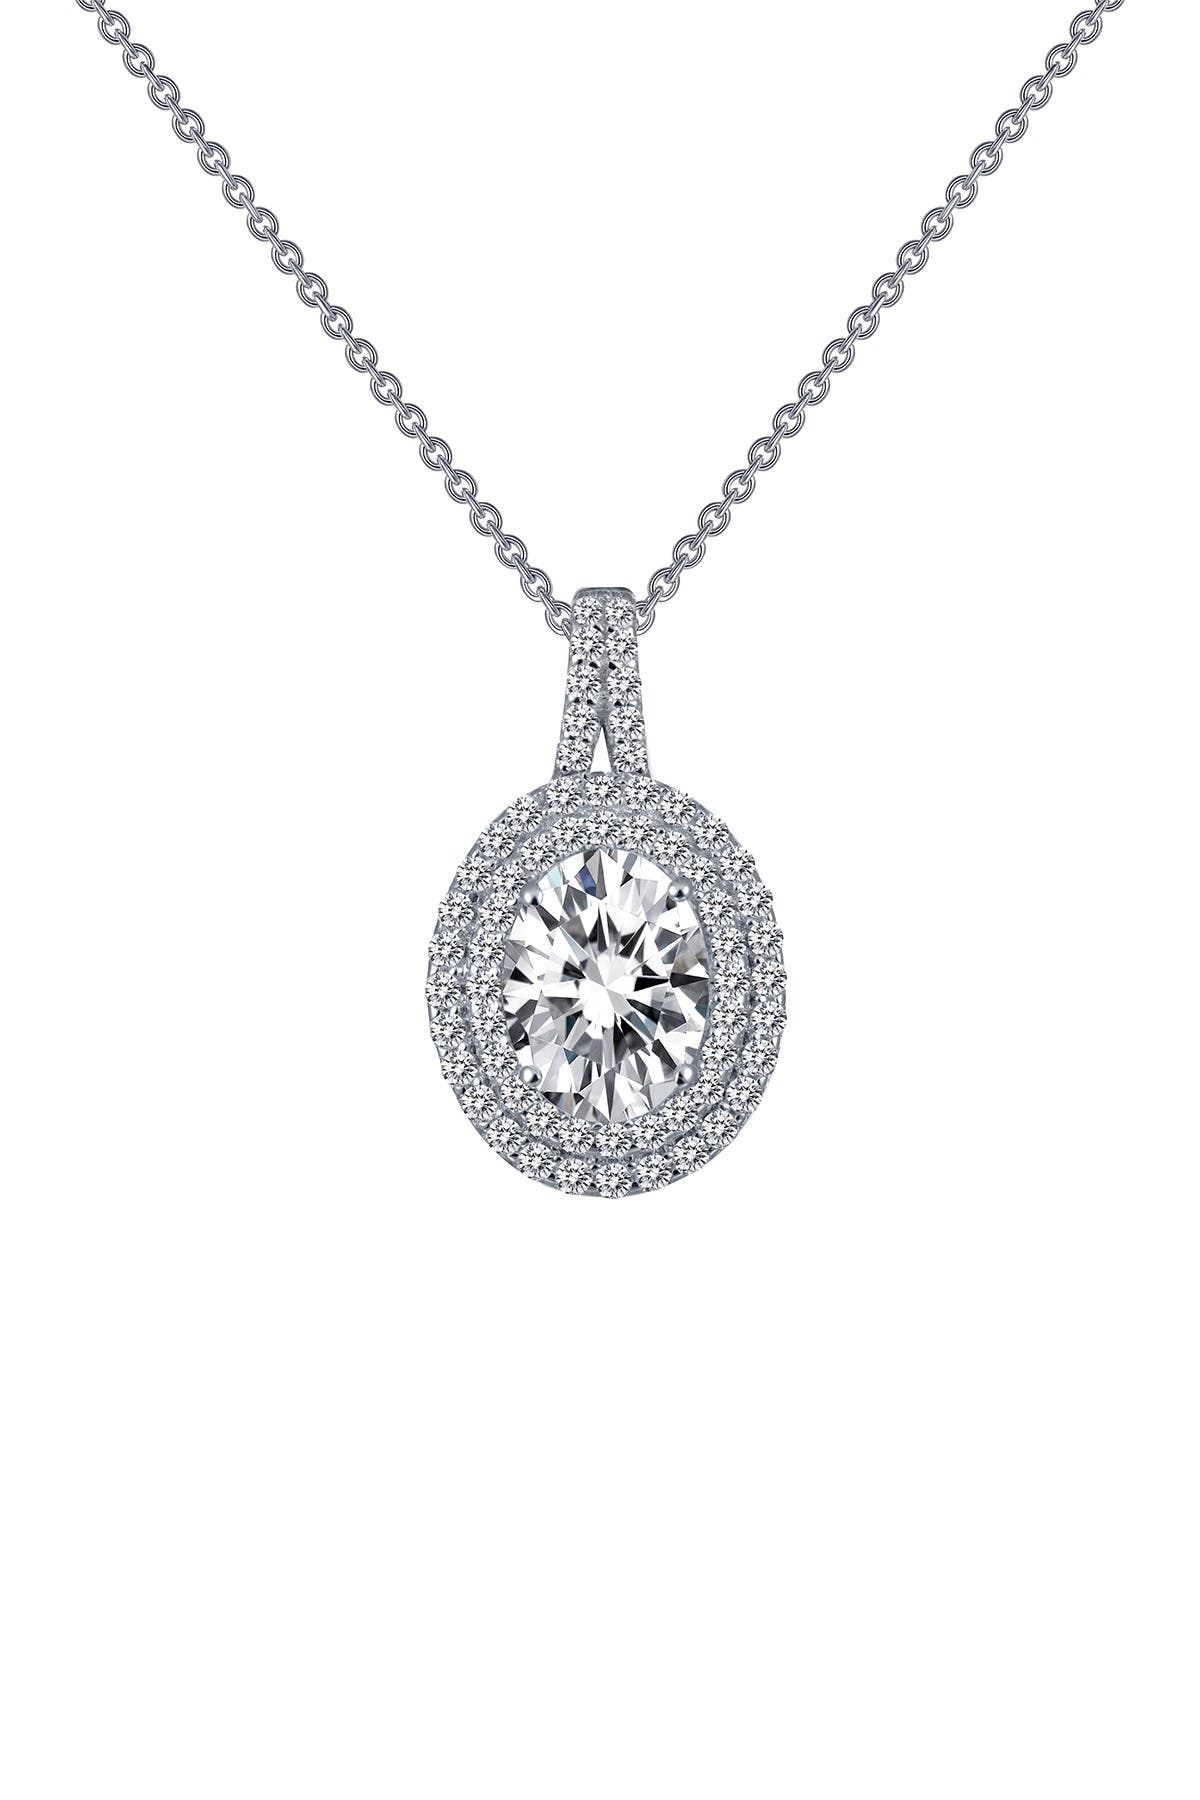 Image of LaFonn Platinum Bonded Sterling Silver Oval Simulated Diamond Halo Pendant Necklace